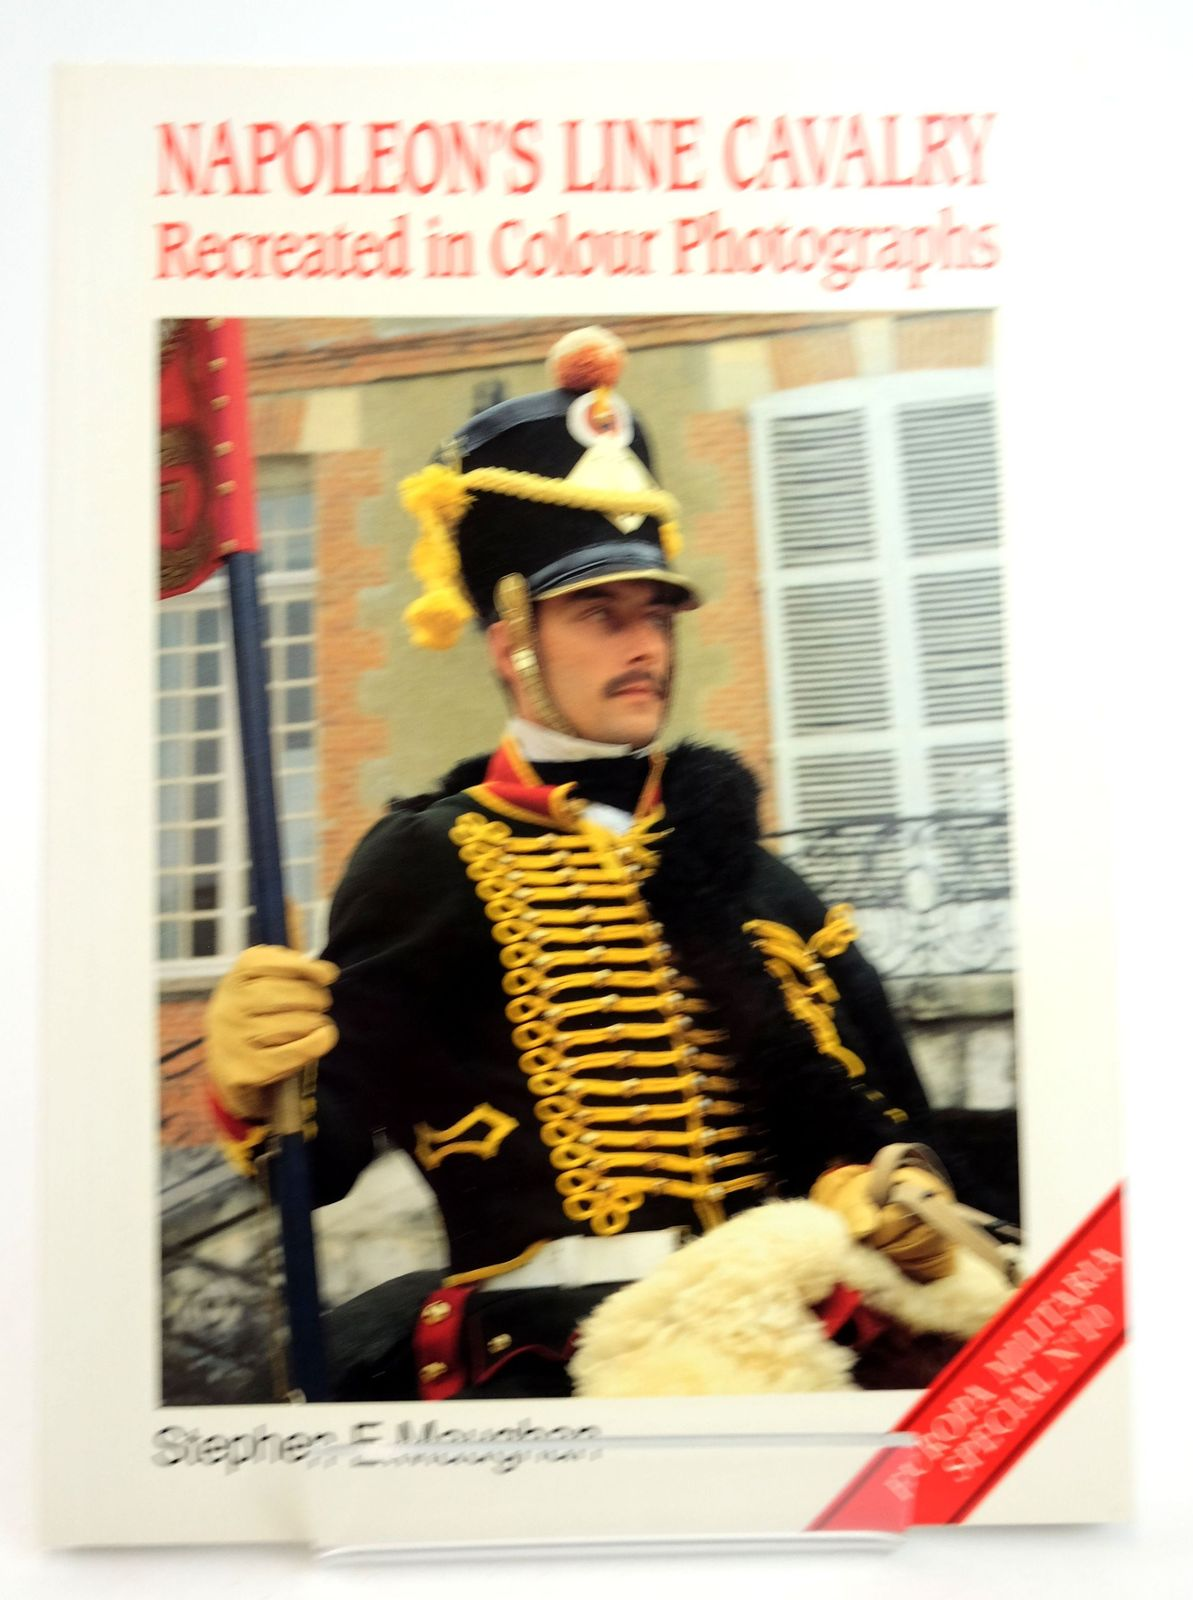 Photo of NAPOLEON'S LINE CAVALRY: RECREATED IN COLOUR PHOTOGRAPHS written by Maughan, Stephen E. published by Windrow & Greene (STOCK CODE: 1819713)  for sale by Stella & Rose's Books